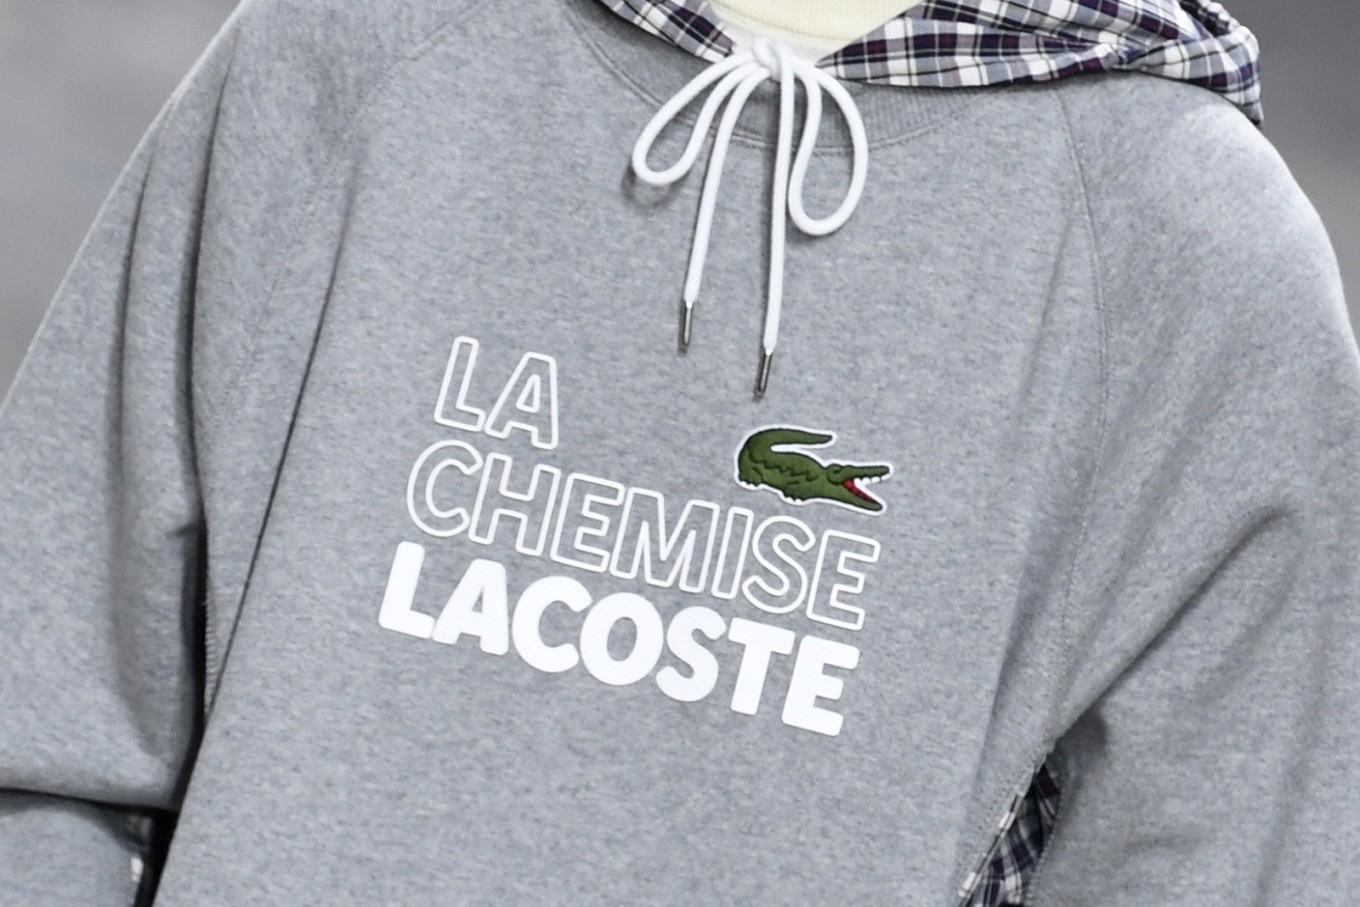 b553df93ac71 Lacoste swaps its crocodile for logos of endangered species ...